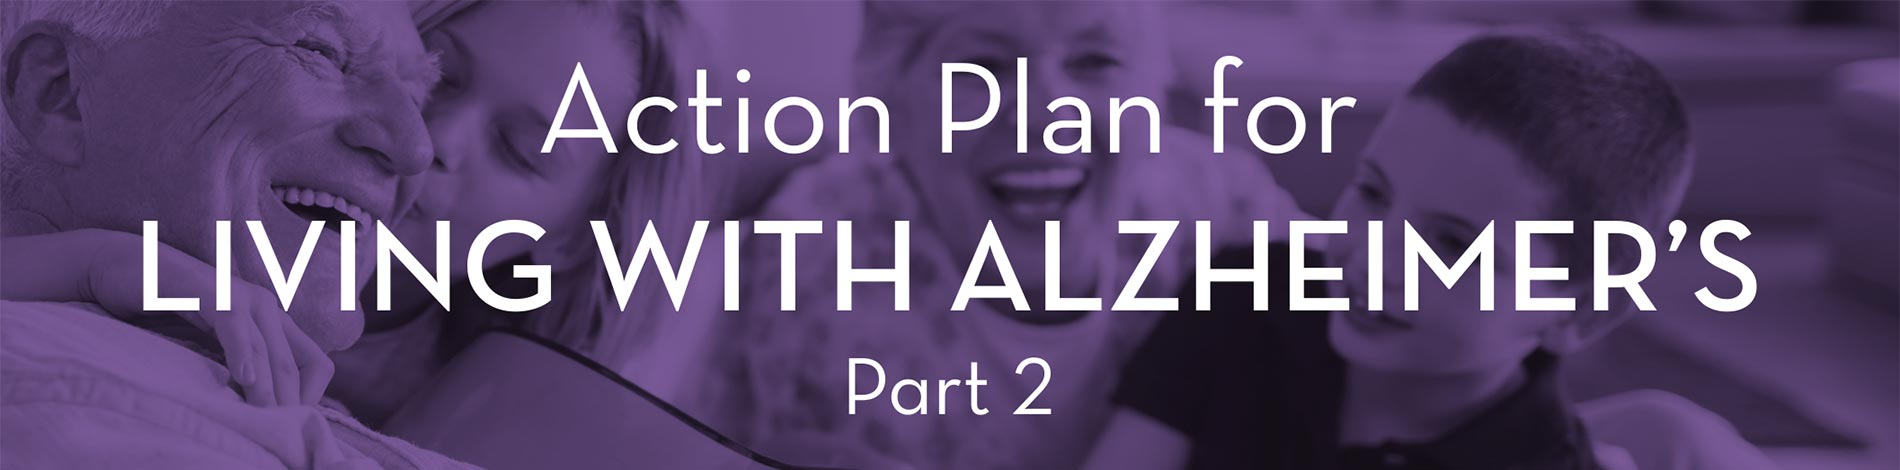 Action Plan for Living with Alzheimers